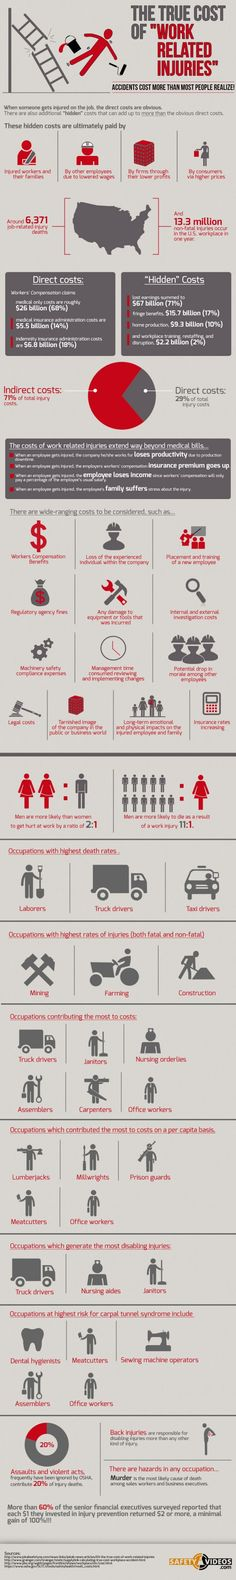 Infographic: The True Cost Of Work Related Injuries